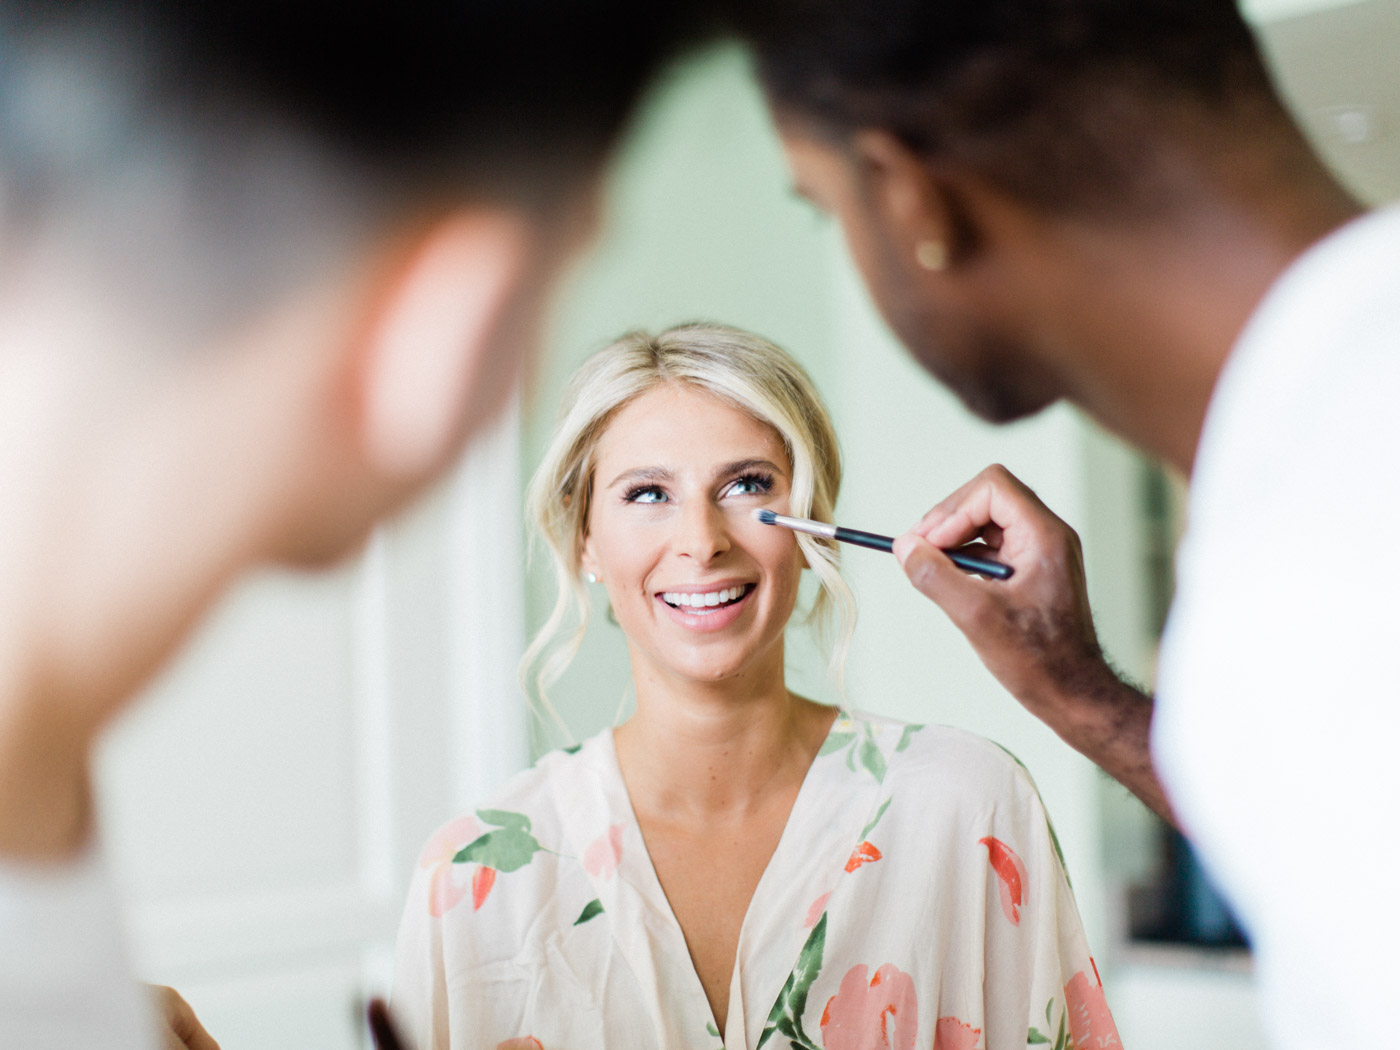 Candid, natural photograph of bride and bridesmaids getting ready for an outdoor summer wedding at J.W. Marriott Rosseau, Muskoka.  Captured by Muskoka wedding photographer Corynn Fowler Photography.